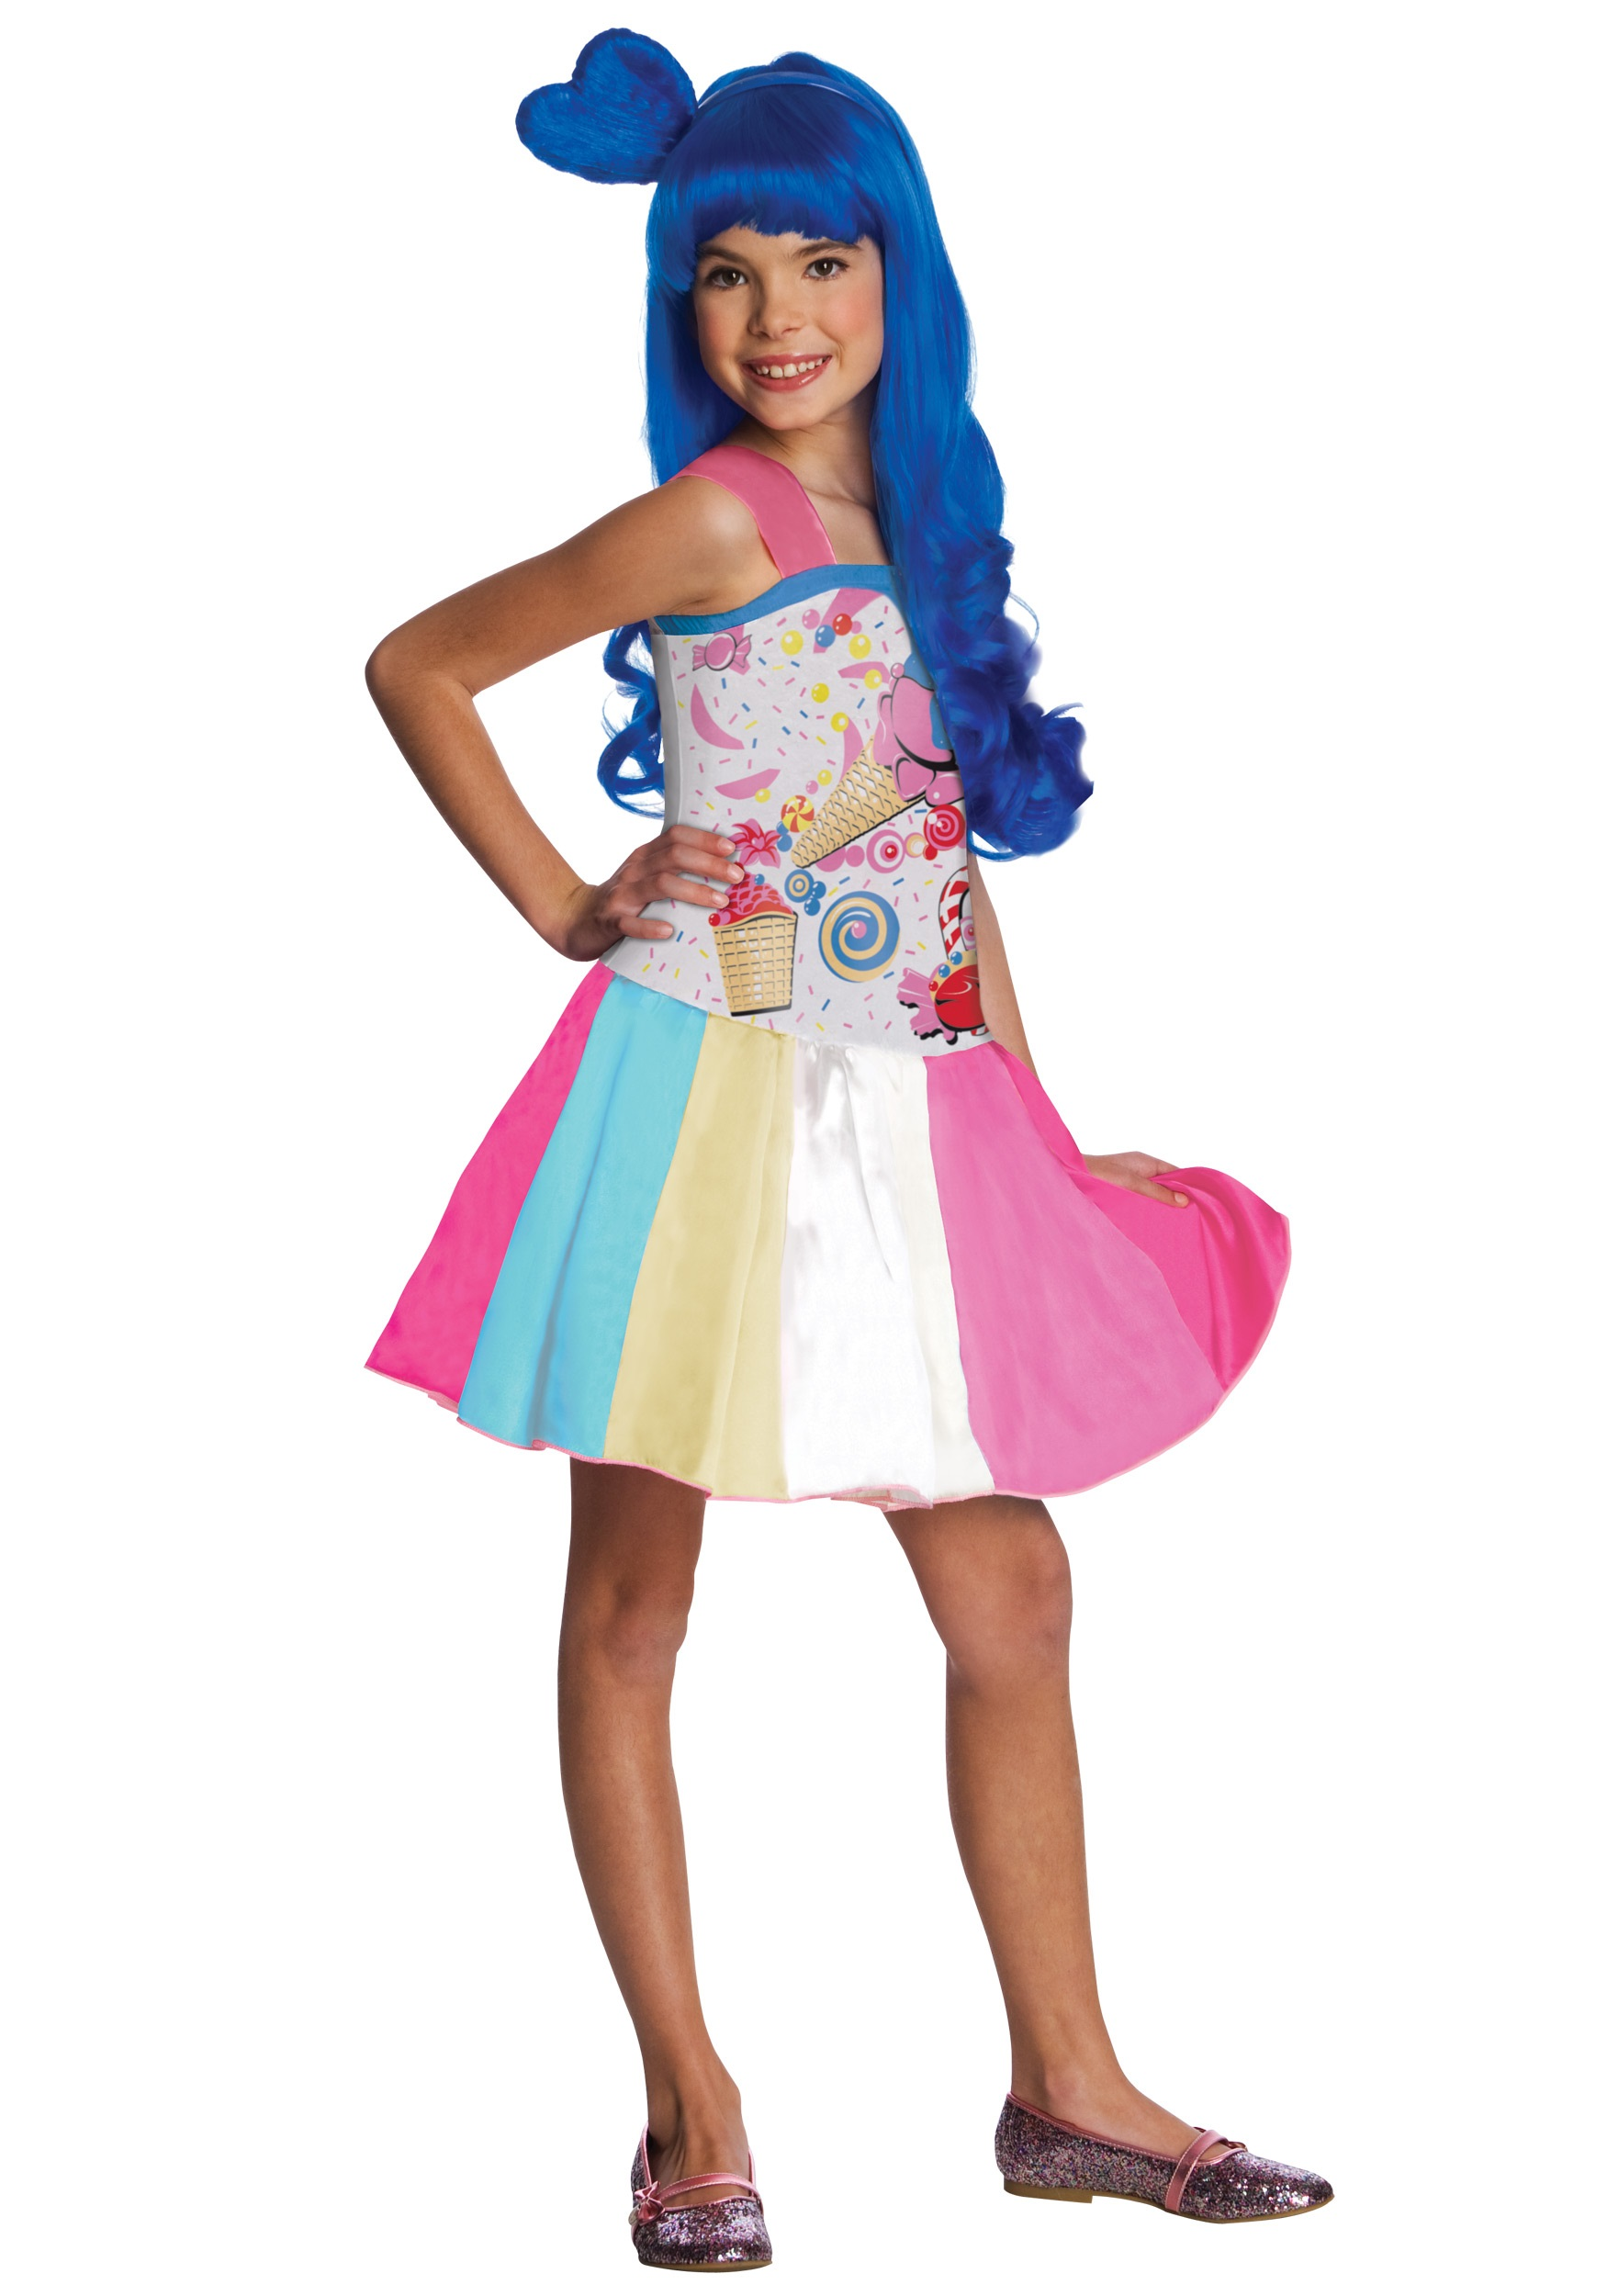 child katy perry candy girl costume halloween costume ideas child katy perry candy girl costume halloween costume ideas